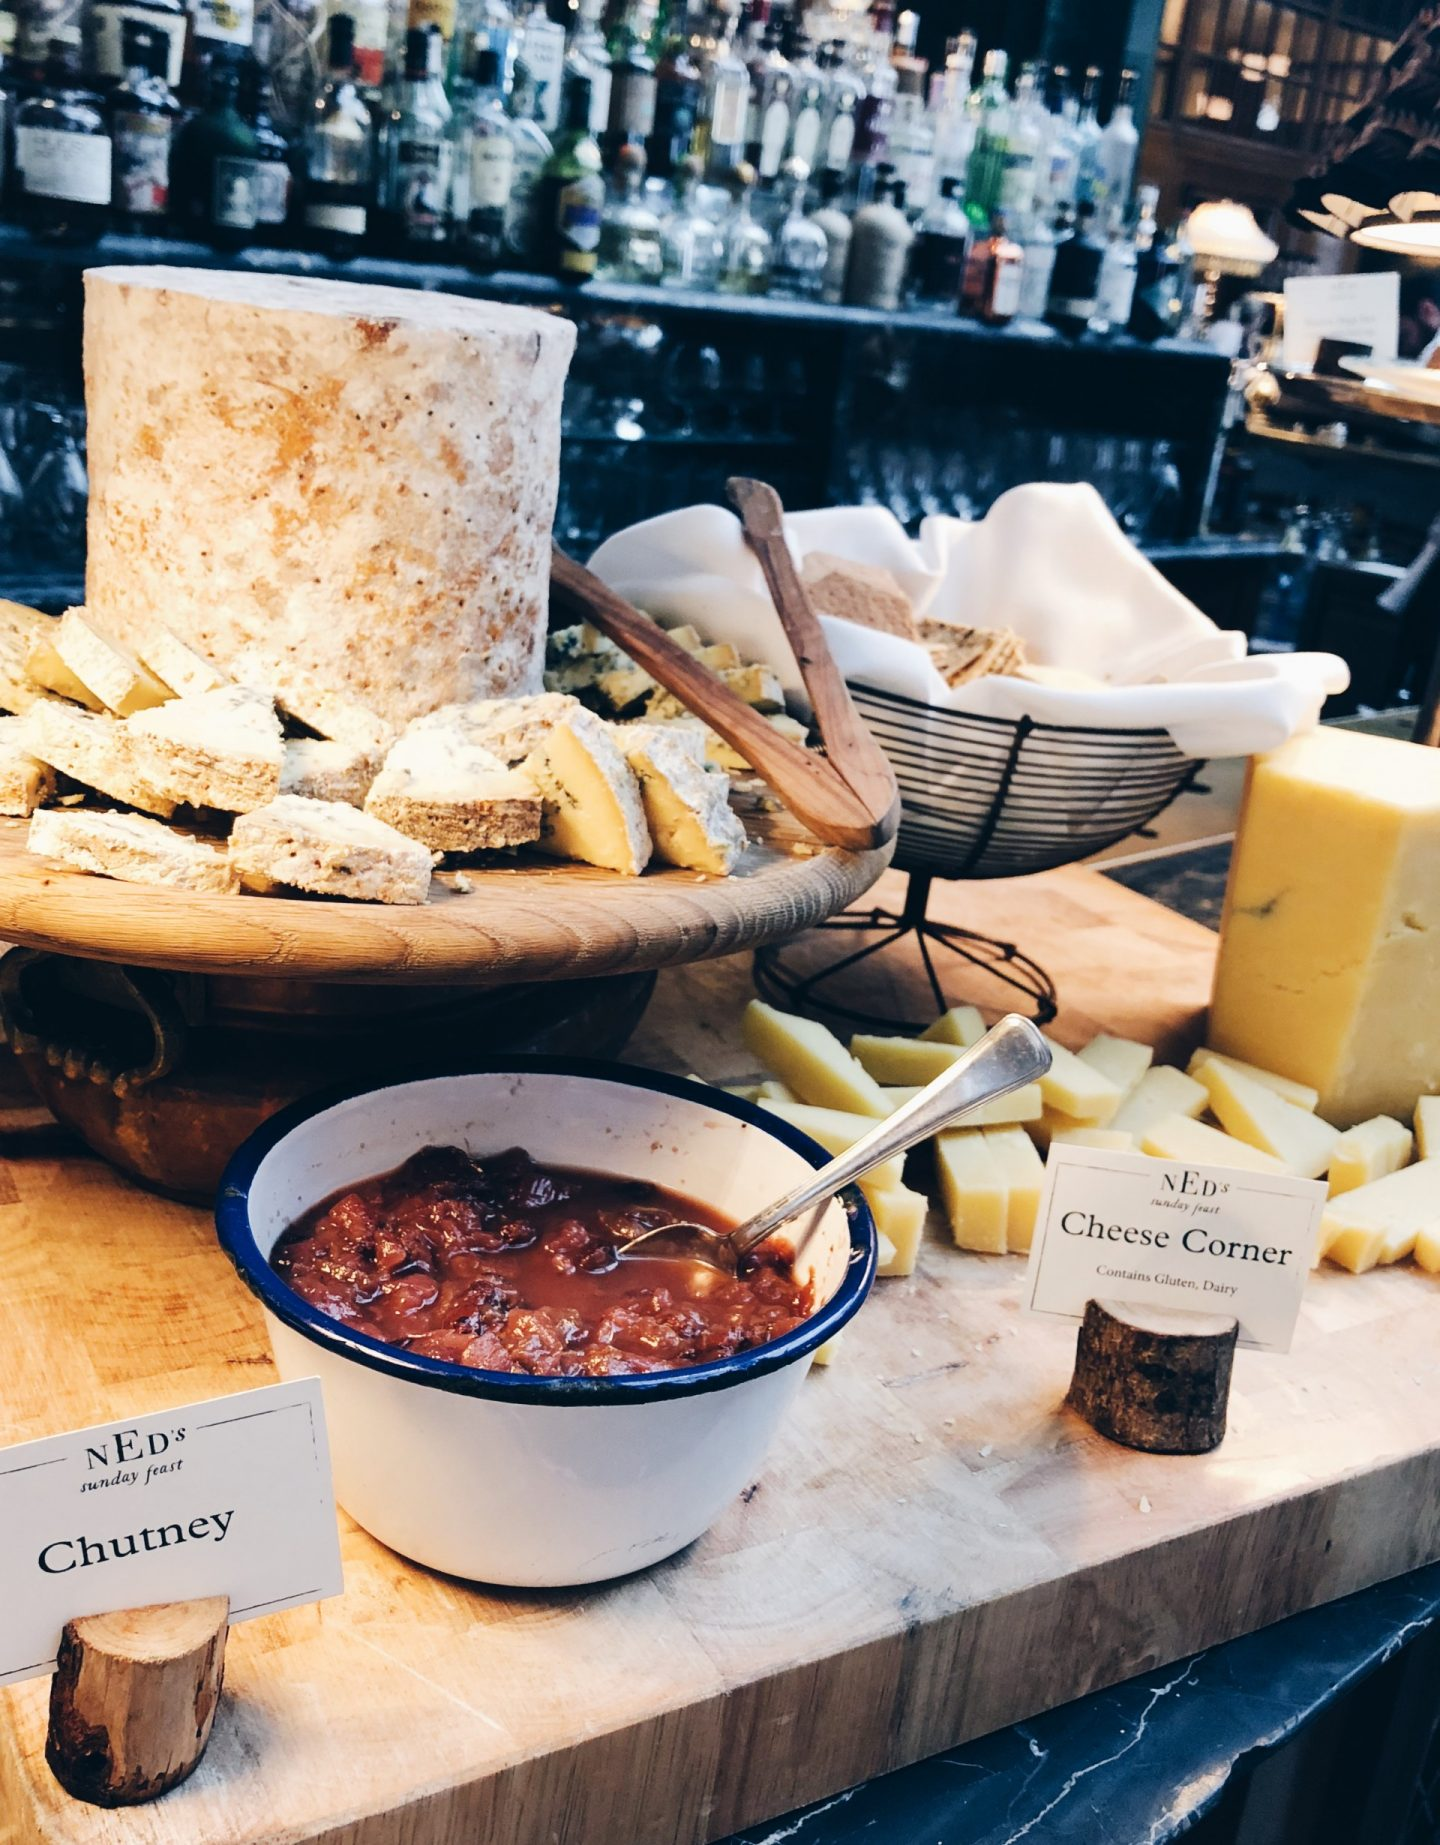 Cheese board at The Ned